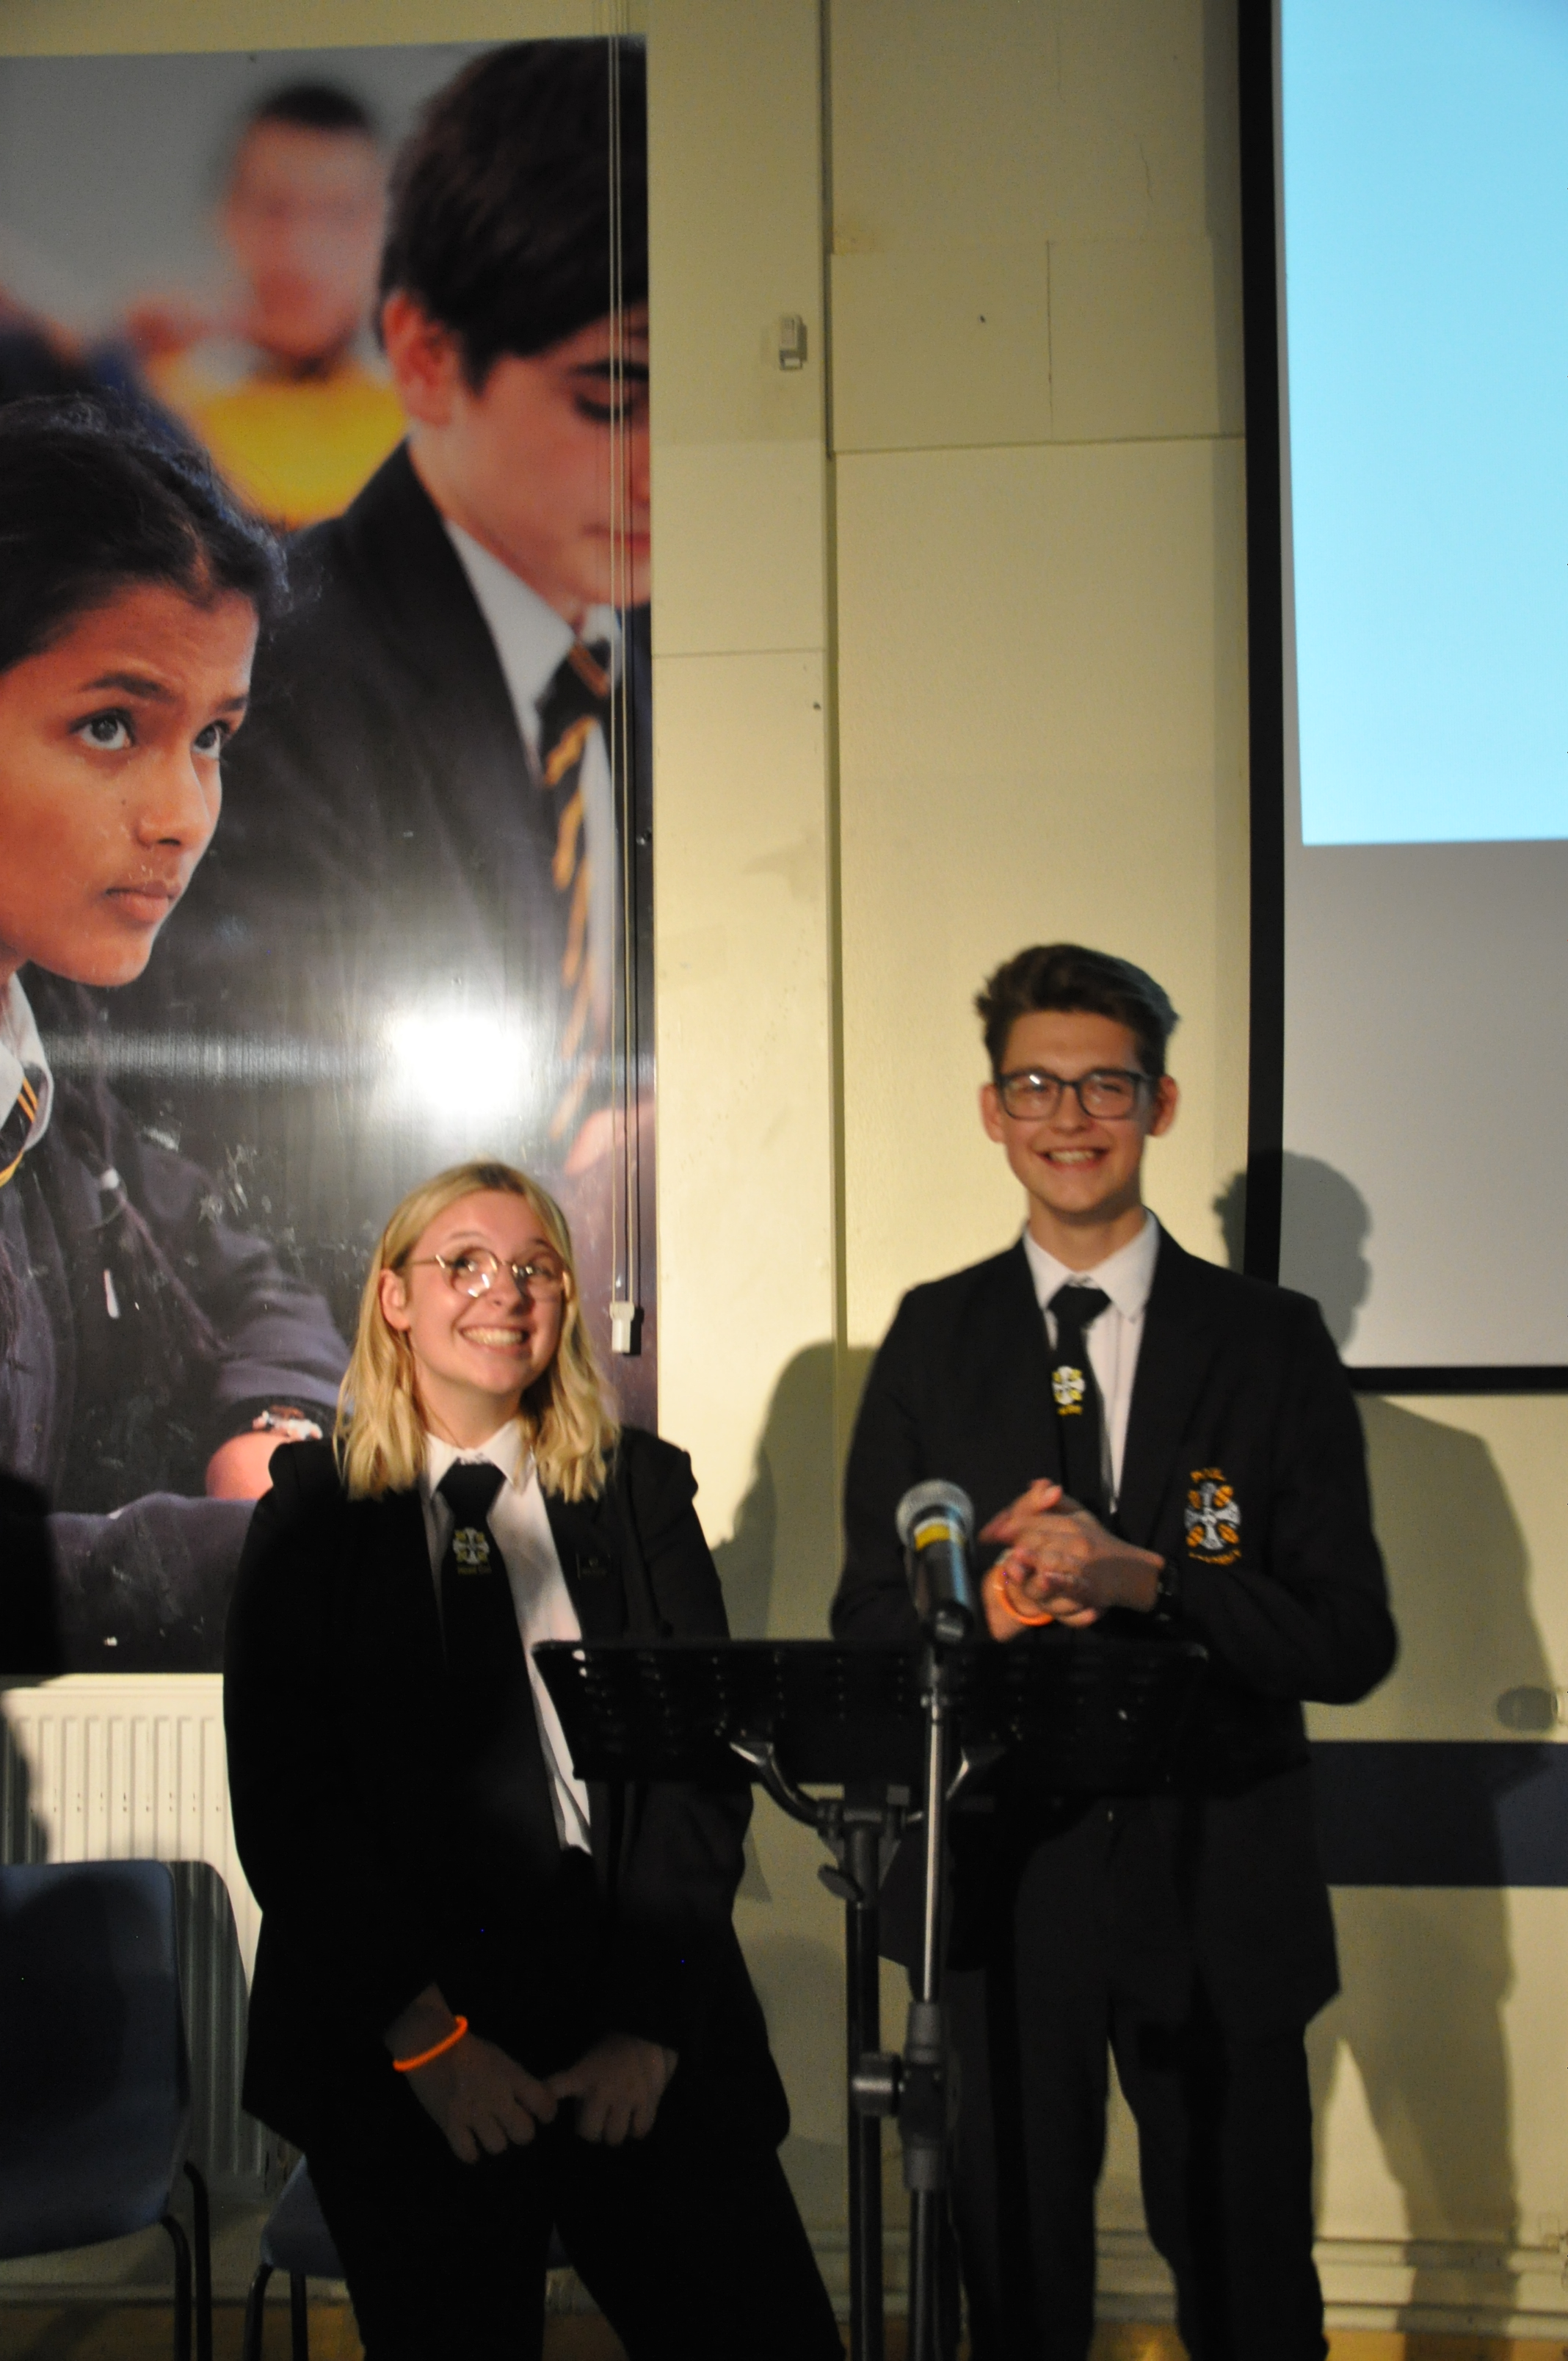 Our Head Girl and Head Boy giving their speech during open evening.